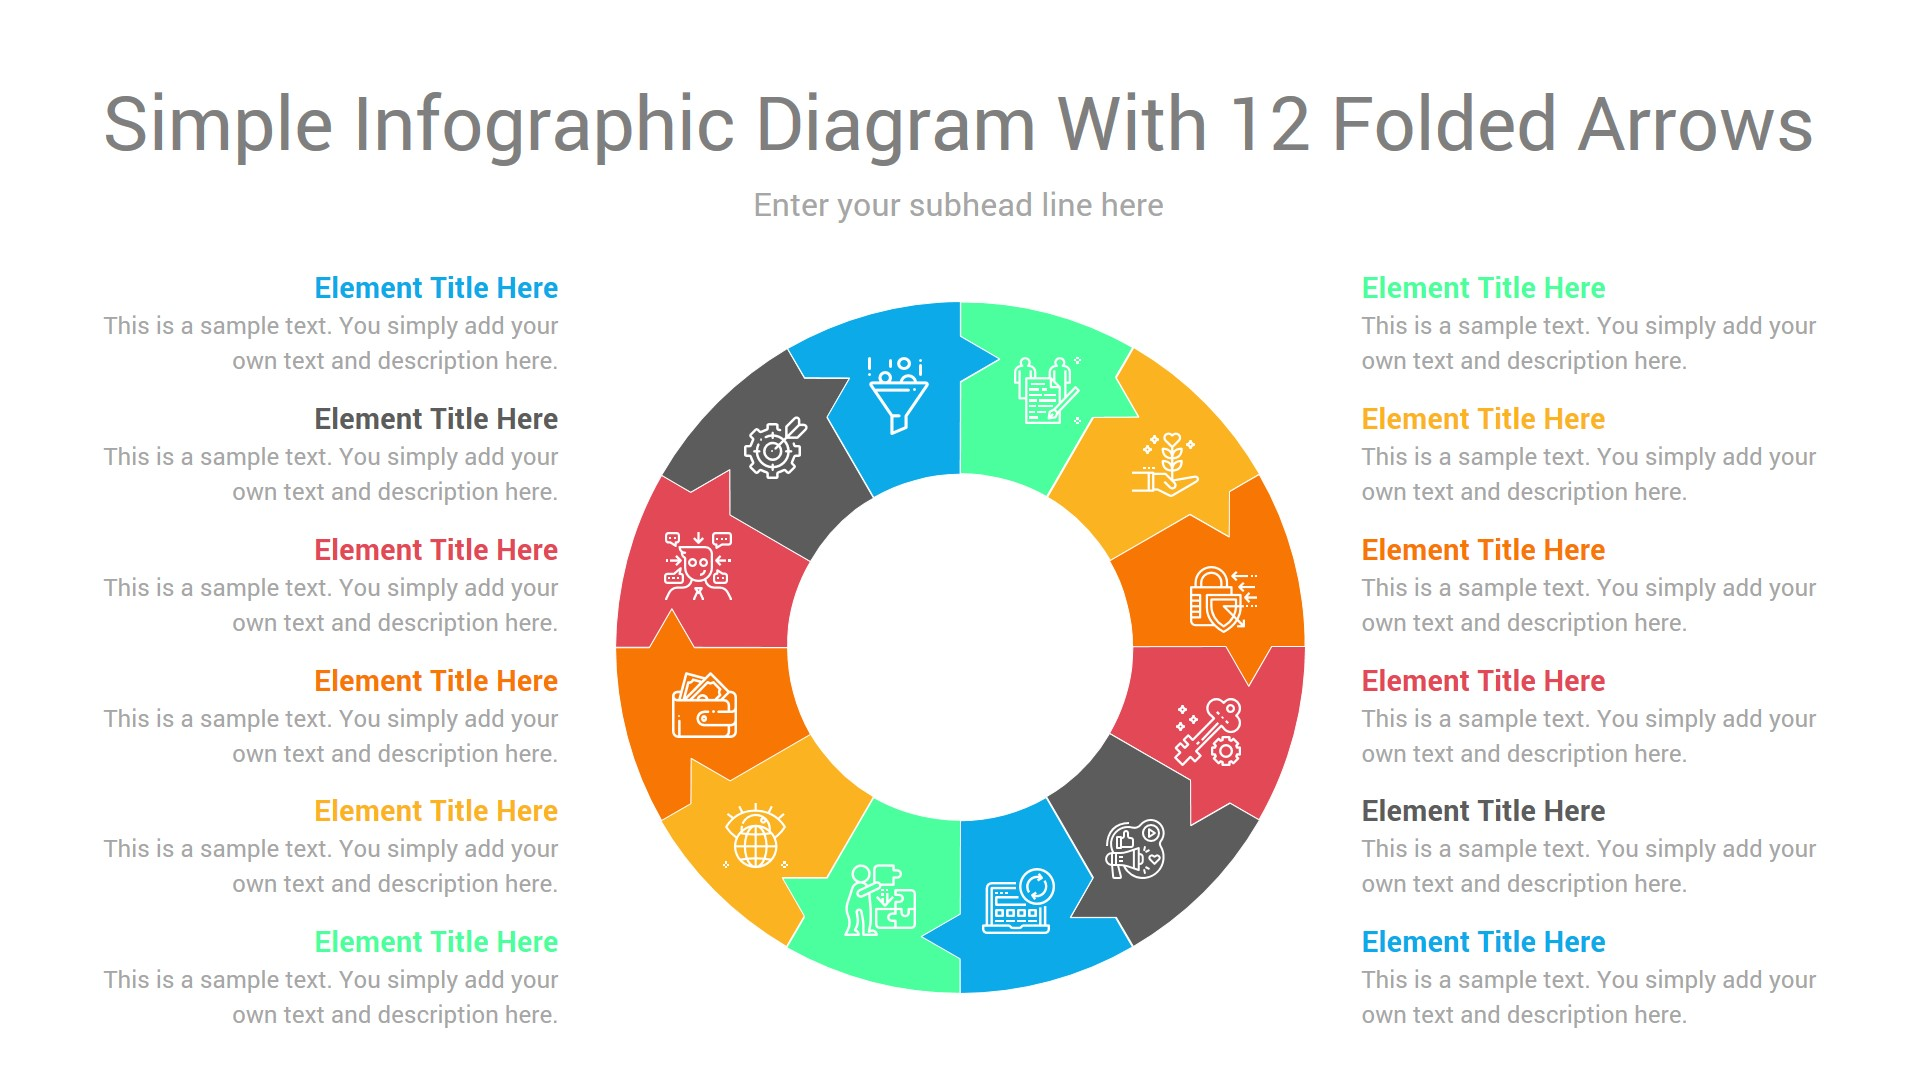 Simple infographic diagram with 12 folded arrows